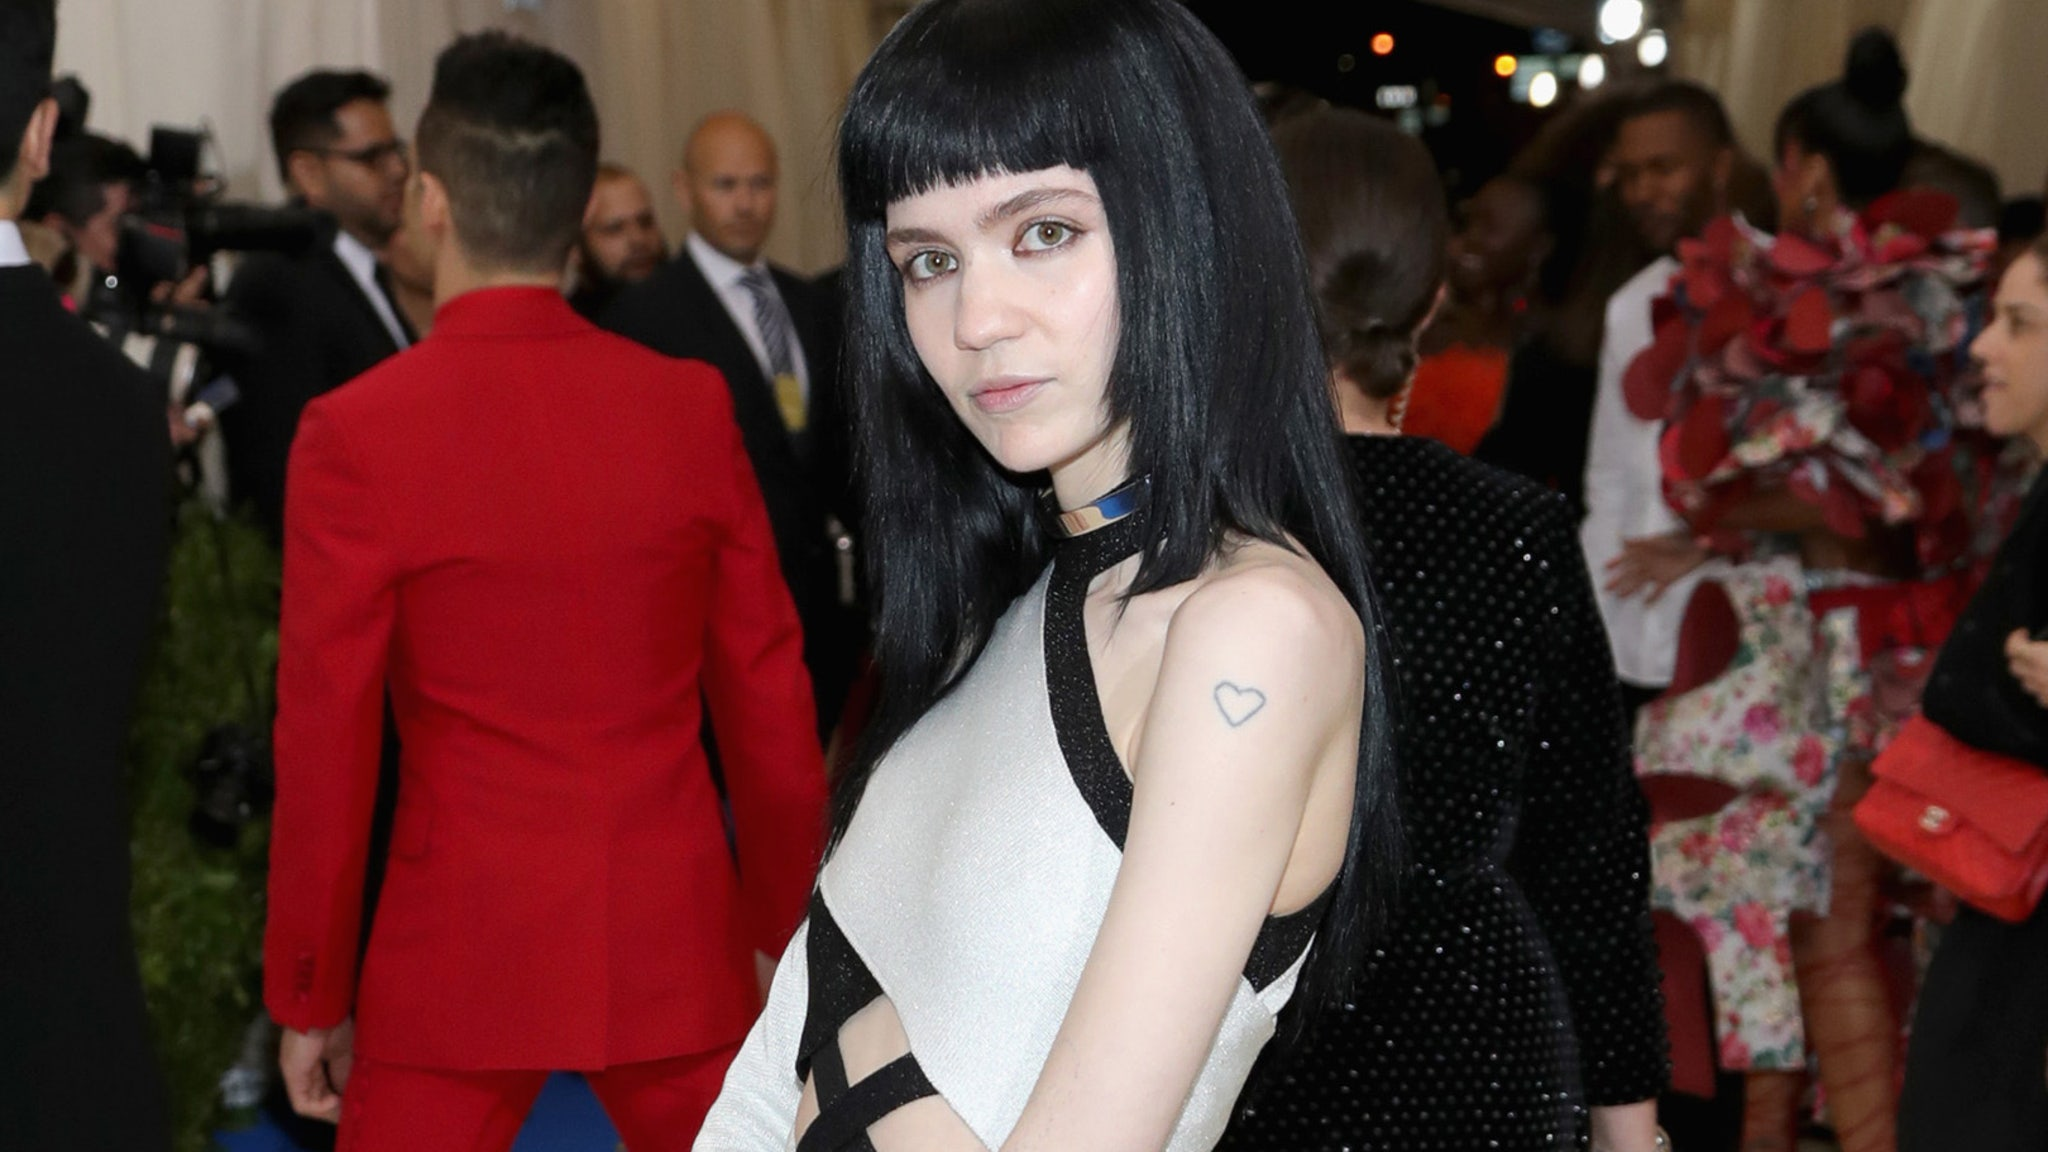 Grimes is Auctioning Off Her Soul at Art Exhibit